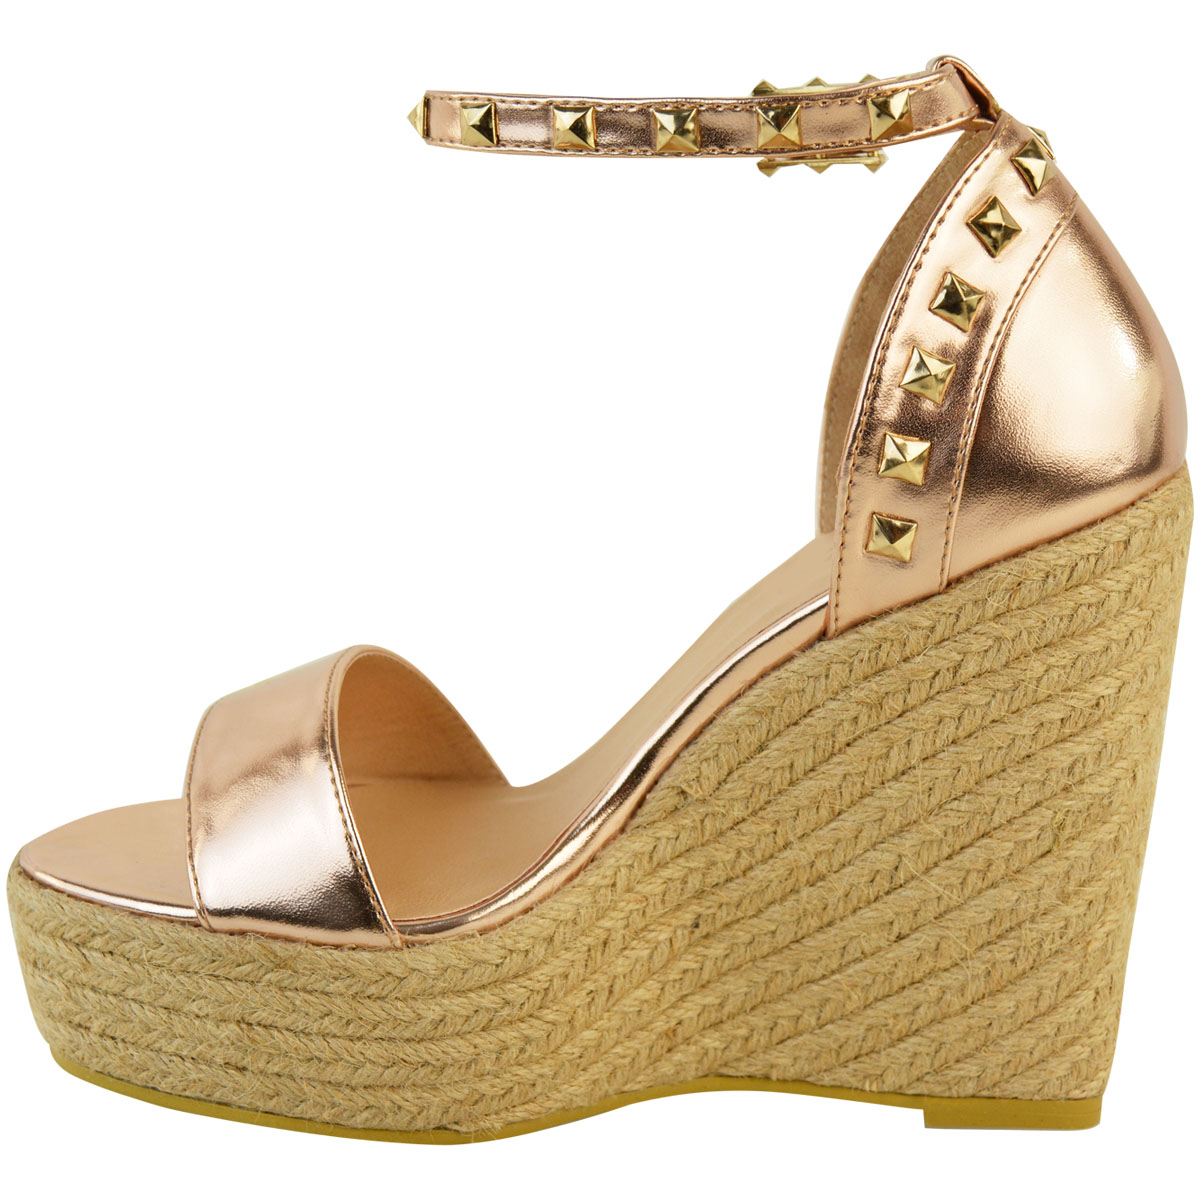 New-Womens-Stud-Espadrille-Wedge-Summer-Sandal-Ladies-Rose-Gold-Party-Shoes-Size thumbnail 8